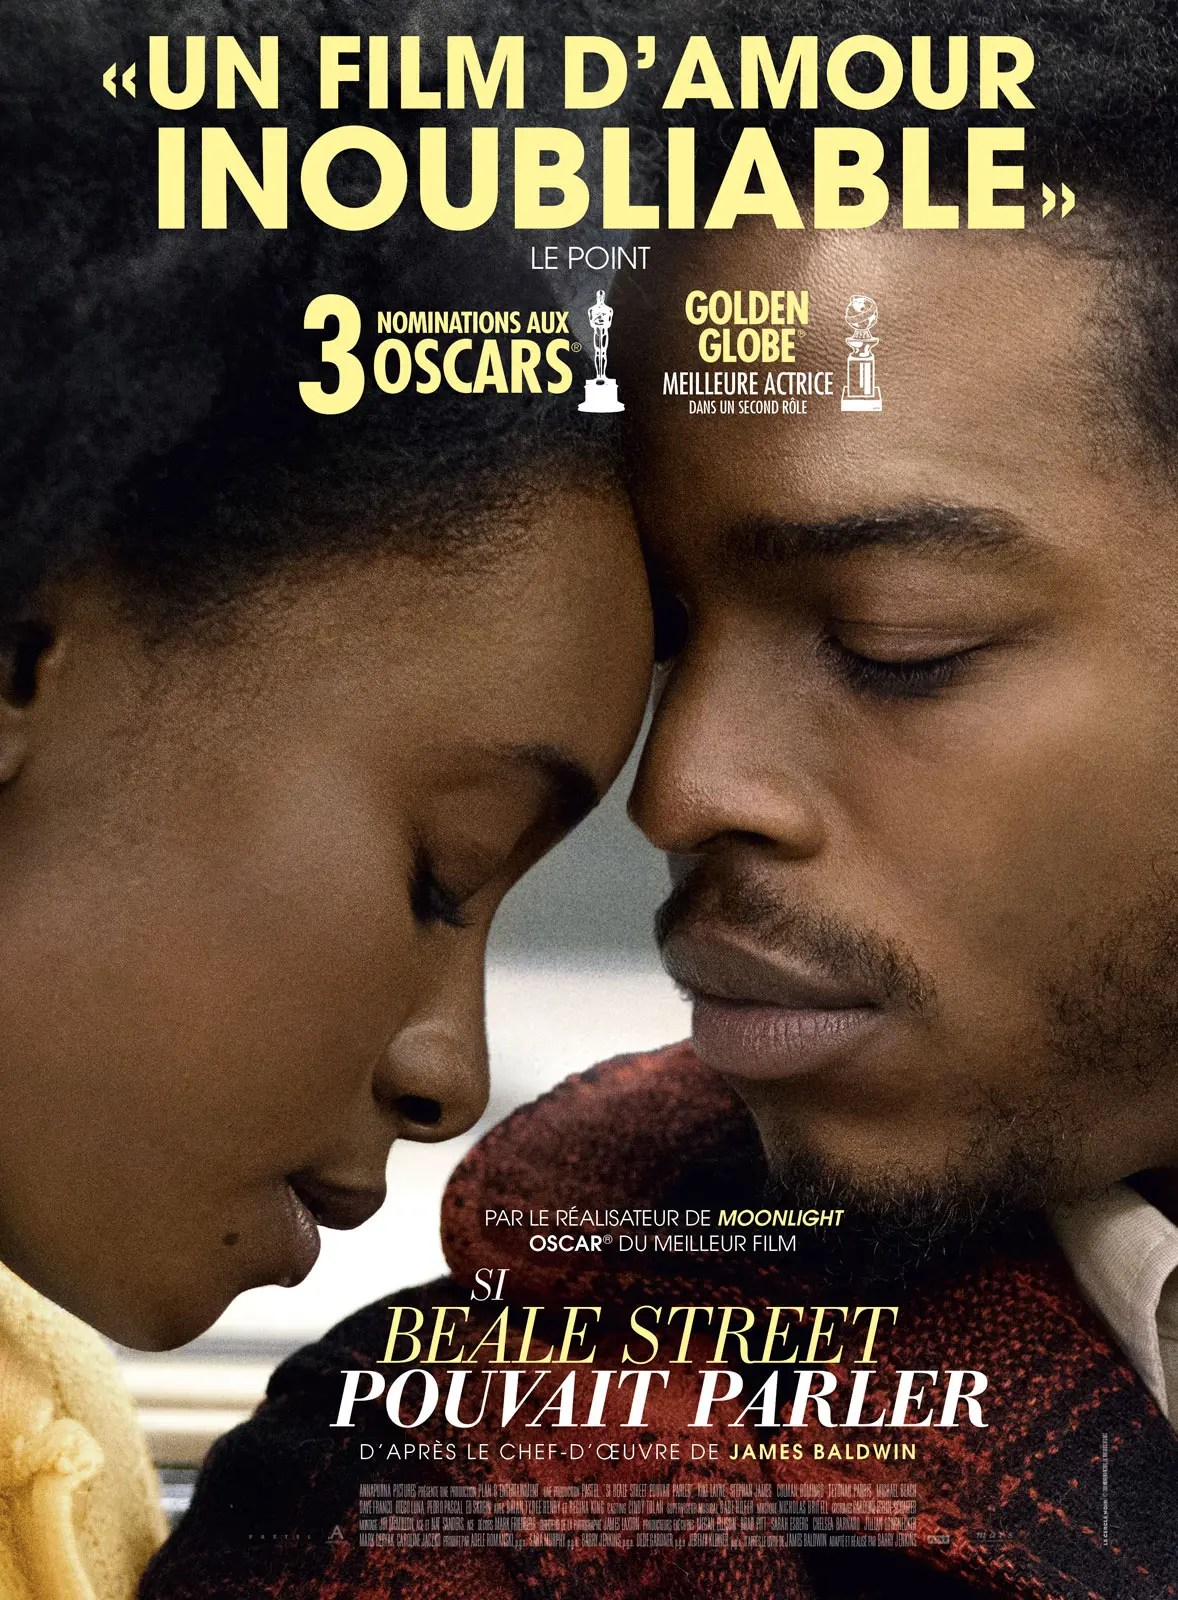 Si Beale Street Pouvait Parler Streaming Synopsis